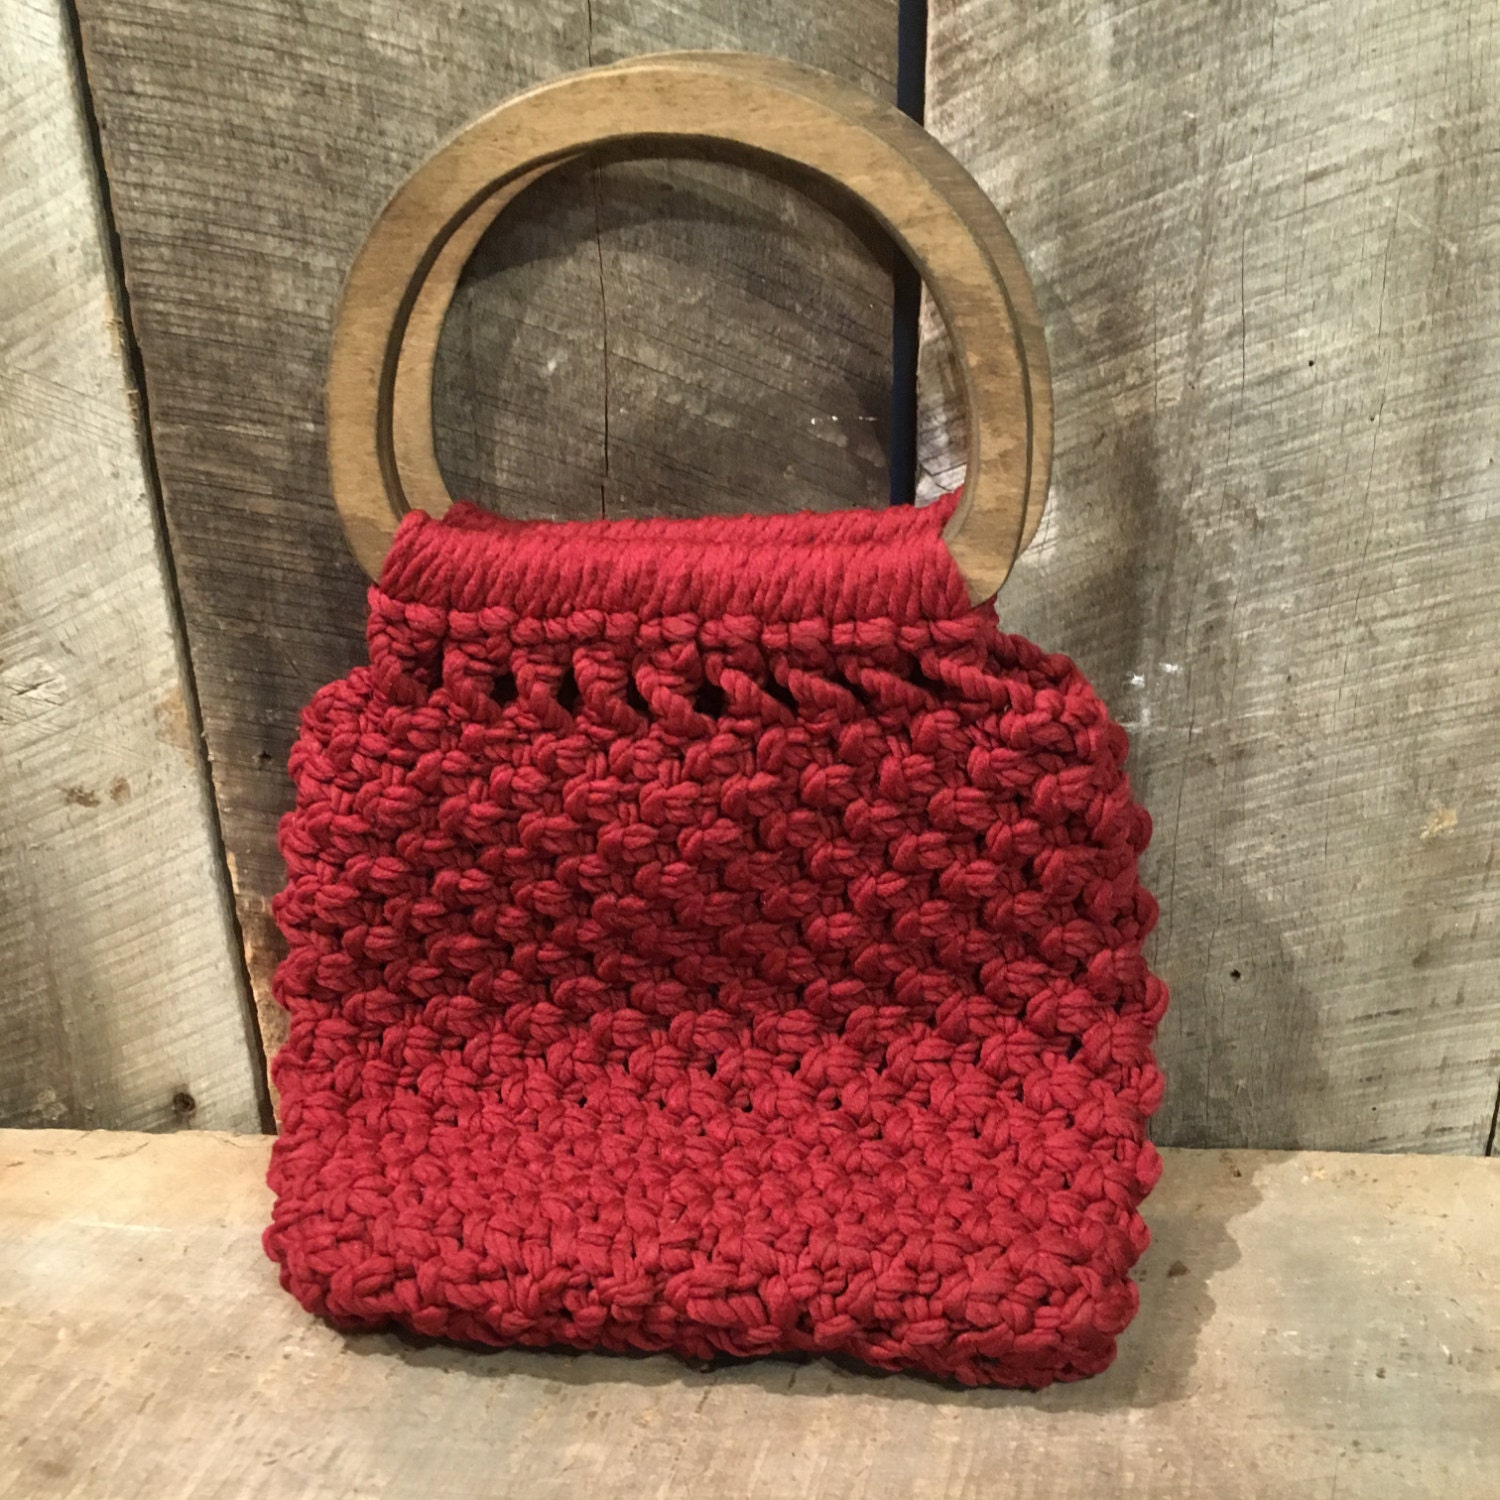 Vintage Crochet Pursemacrame Purse Wood Handle Purse Etsy